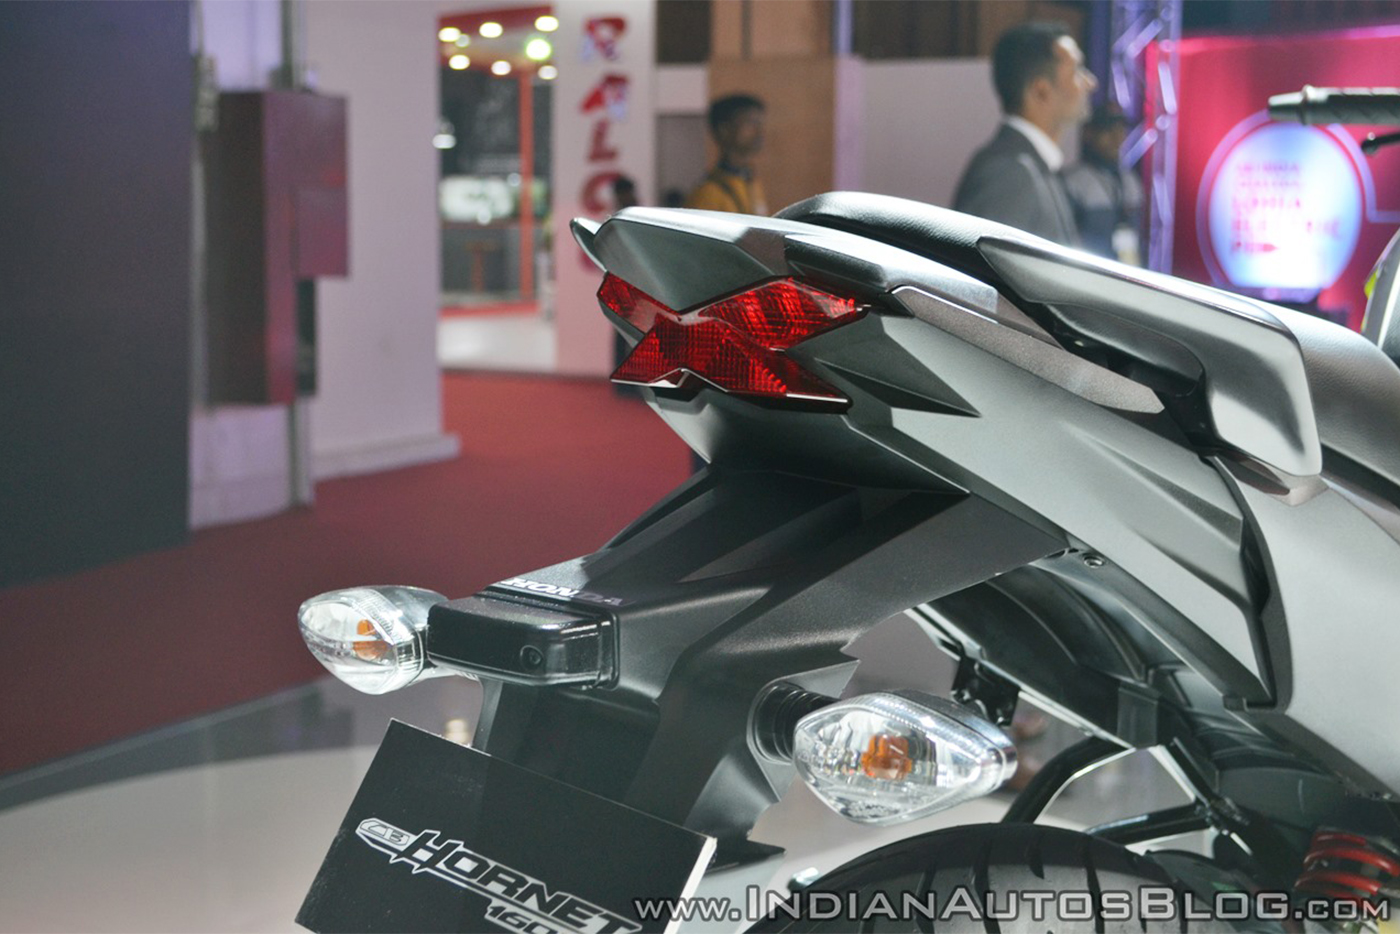 2018-honda-cb-hornet-160r-tail-light-at-2018-auto-expo.jpg